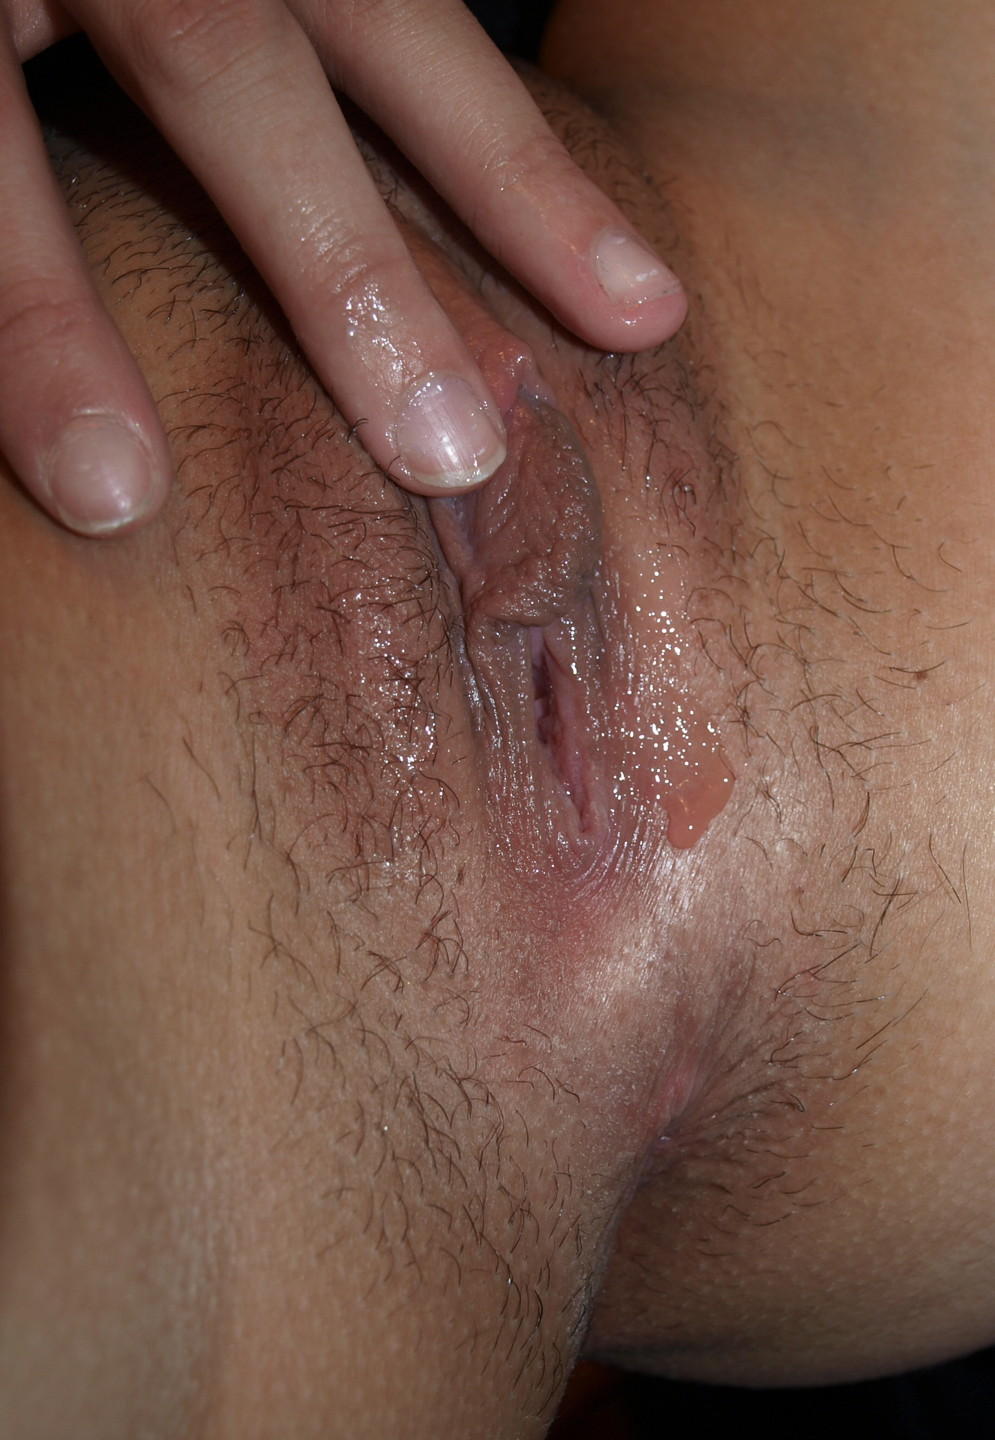 pea sized lump near clit